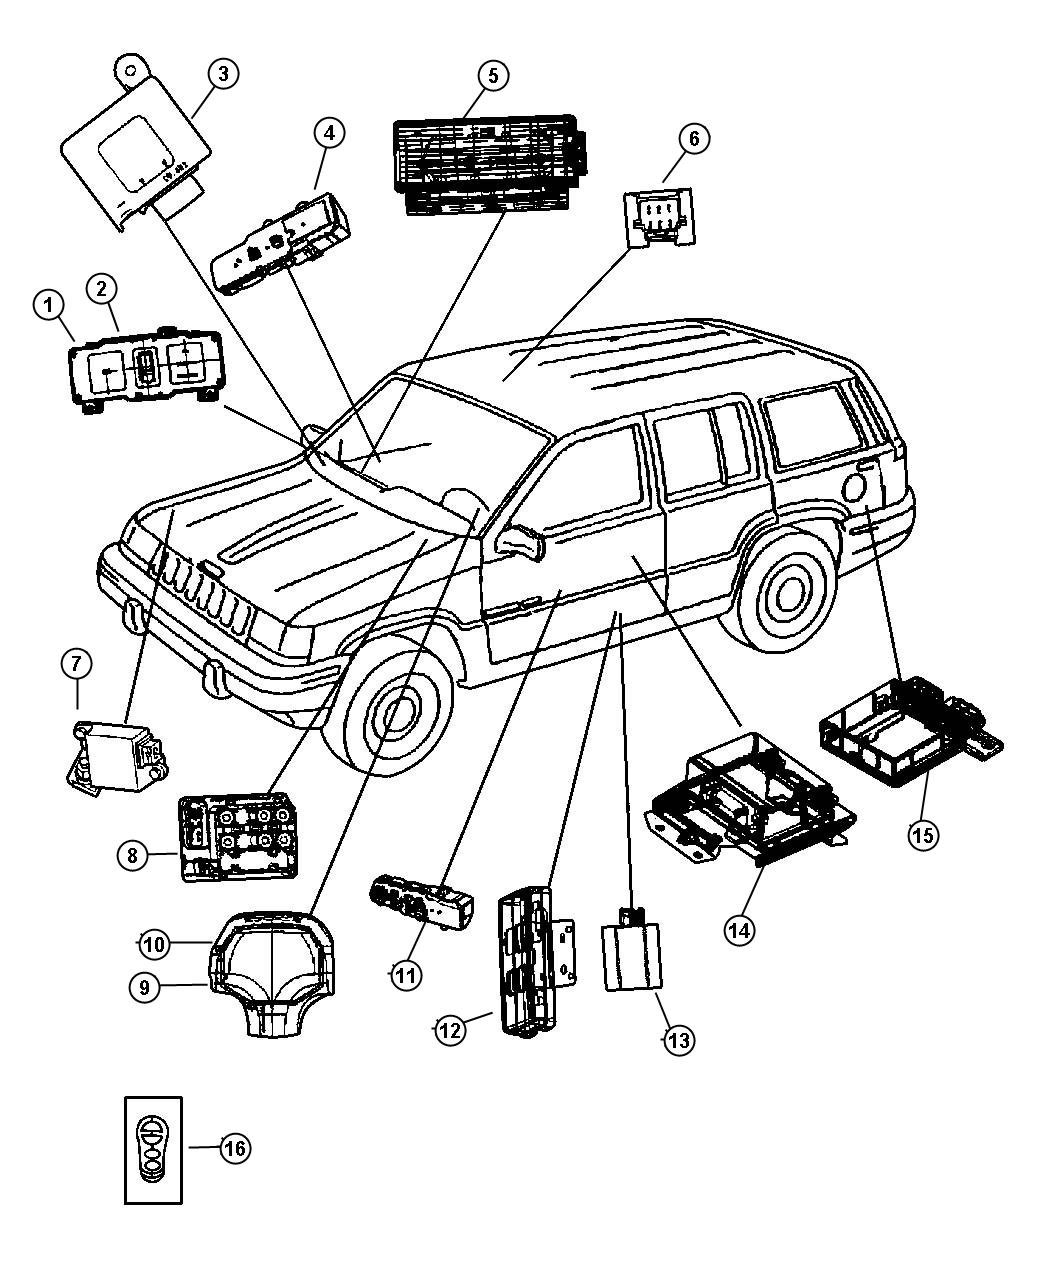 2006 jeep liberty abs wiring diagram 2006 discover your wiring jeep grand cherokee body control module location